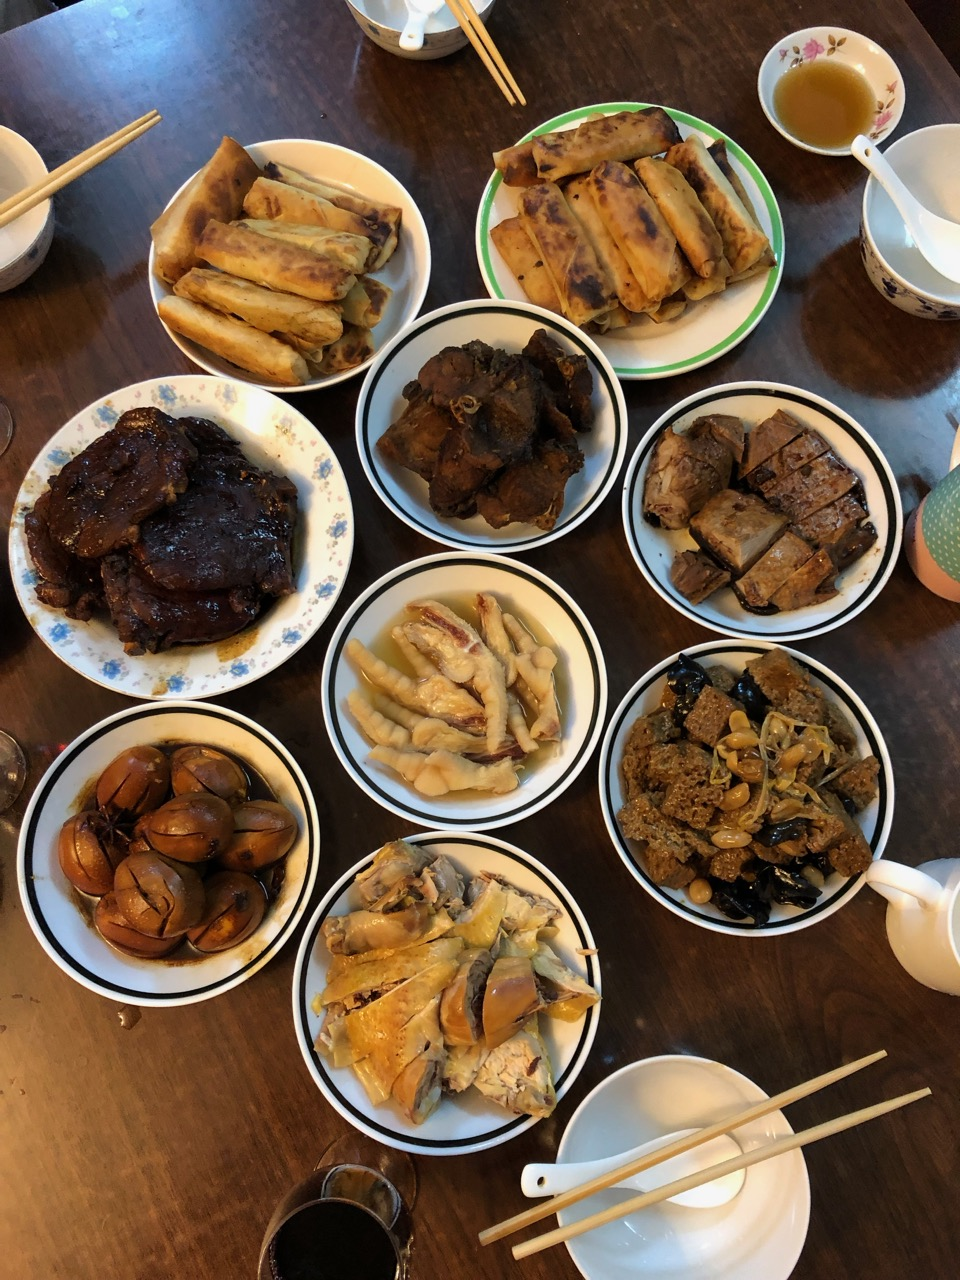 A classic Shanghai-style New Year's dinner cooked by my father-in-law: spring rolls, duck, chicken, fish, eggs, kaofu, pork chops, and chicken feet!